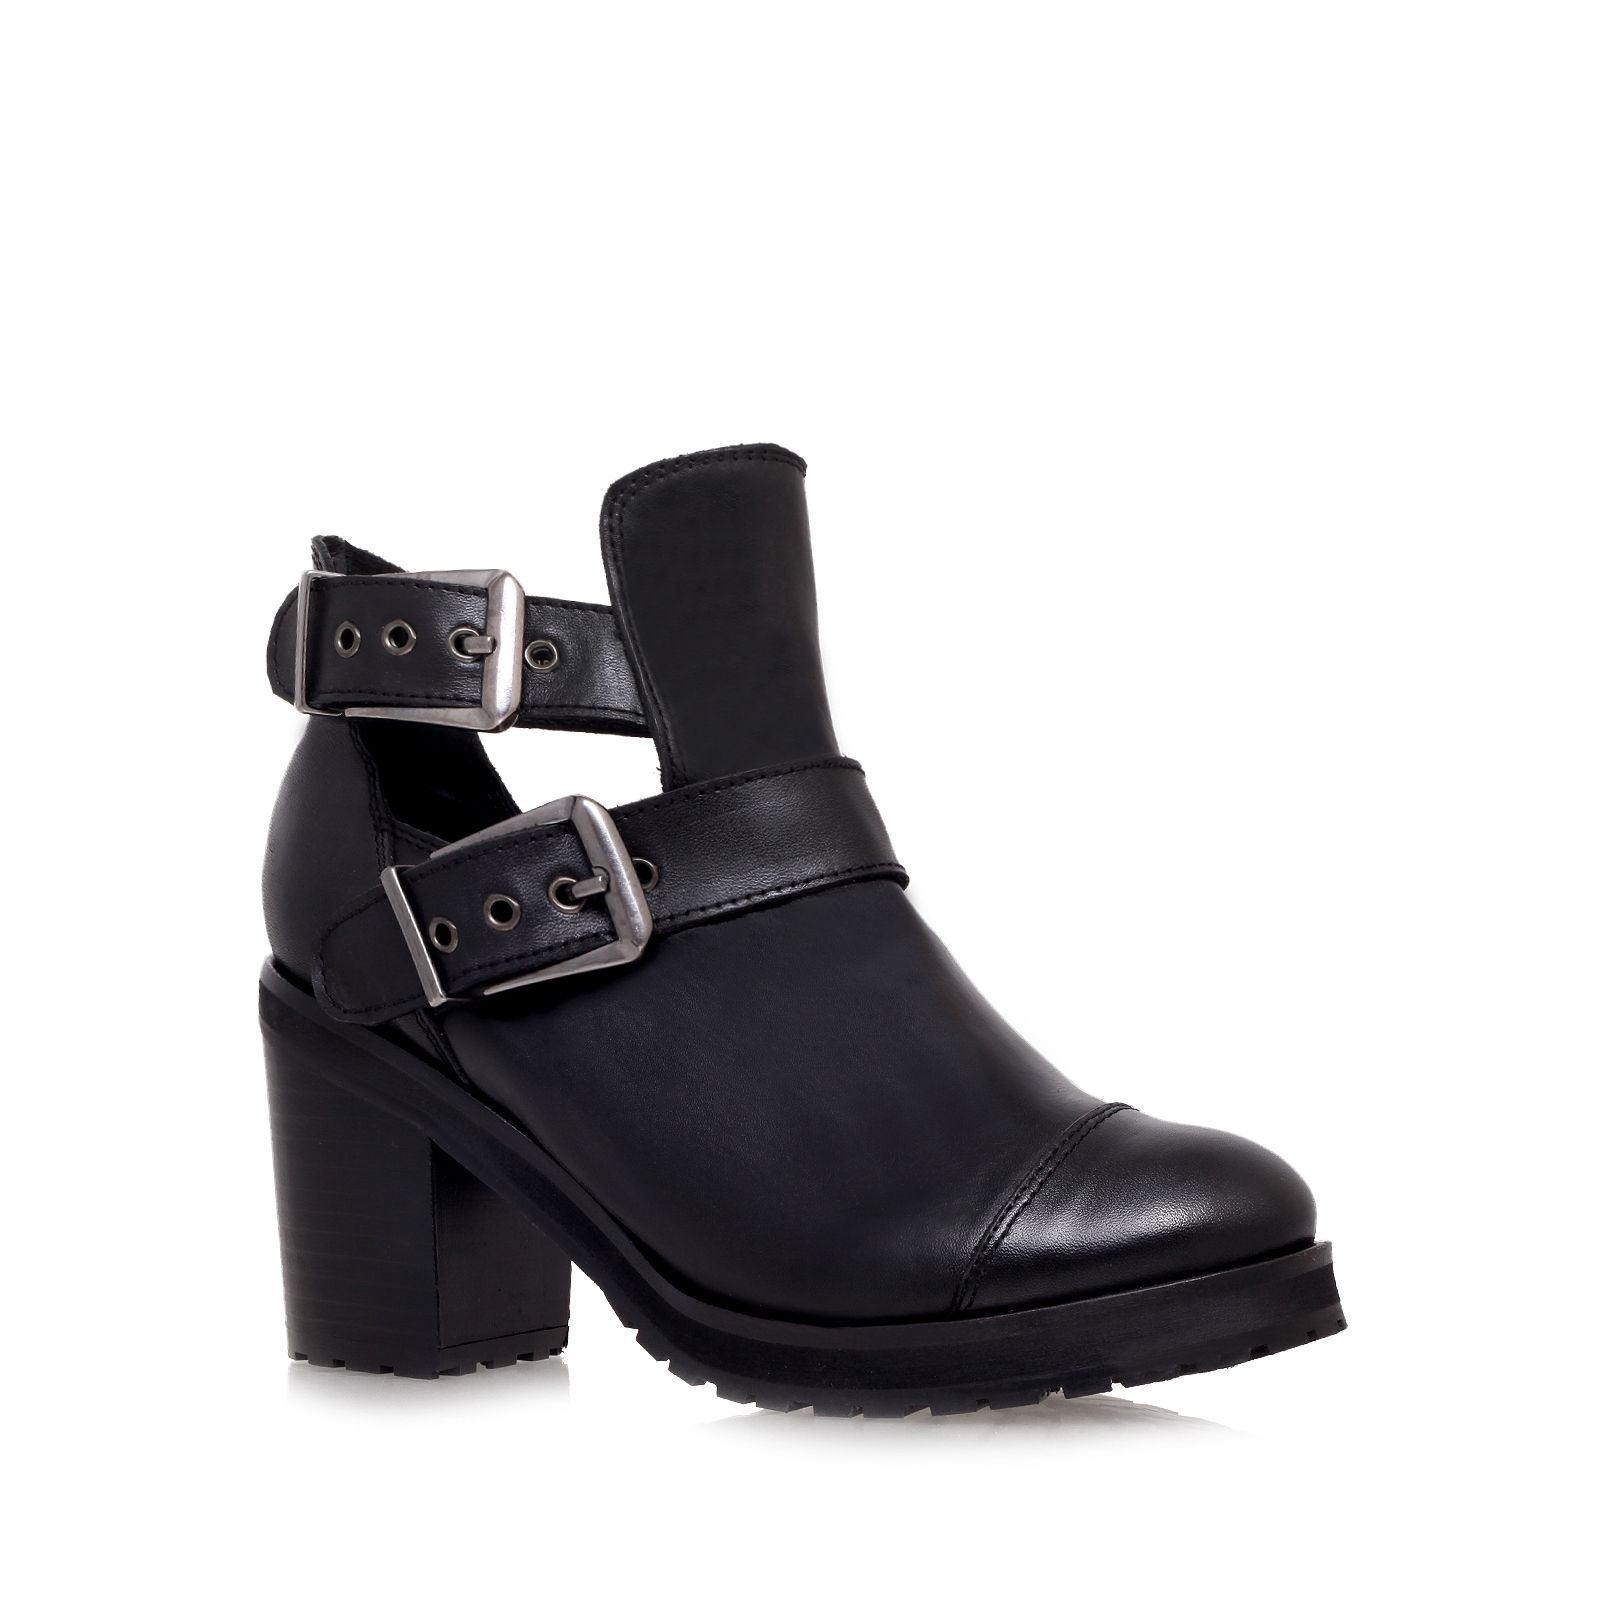 Tilly heeled boots